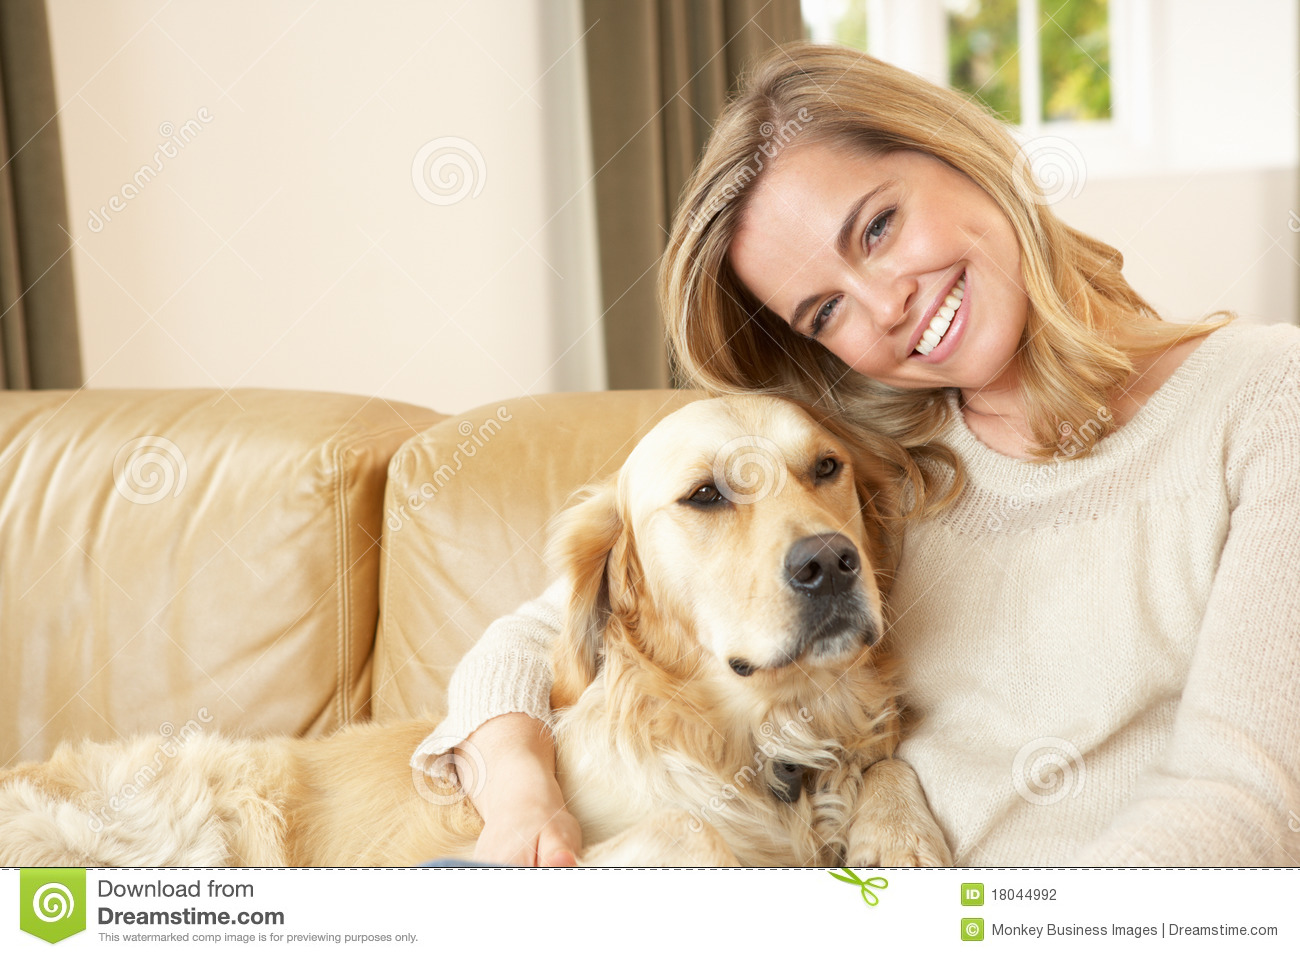 Beastialitality Pictures Dogs